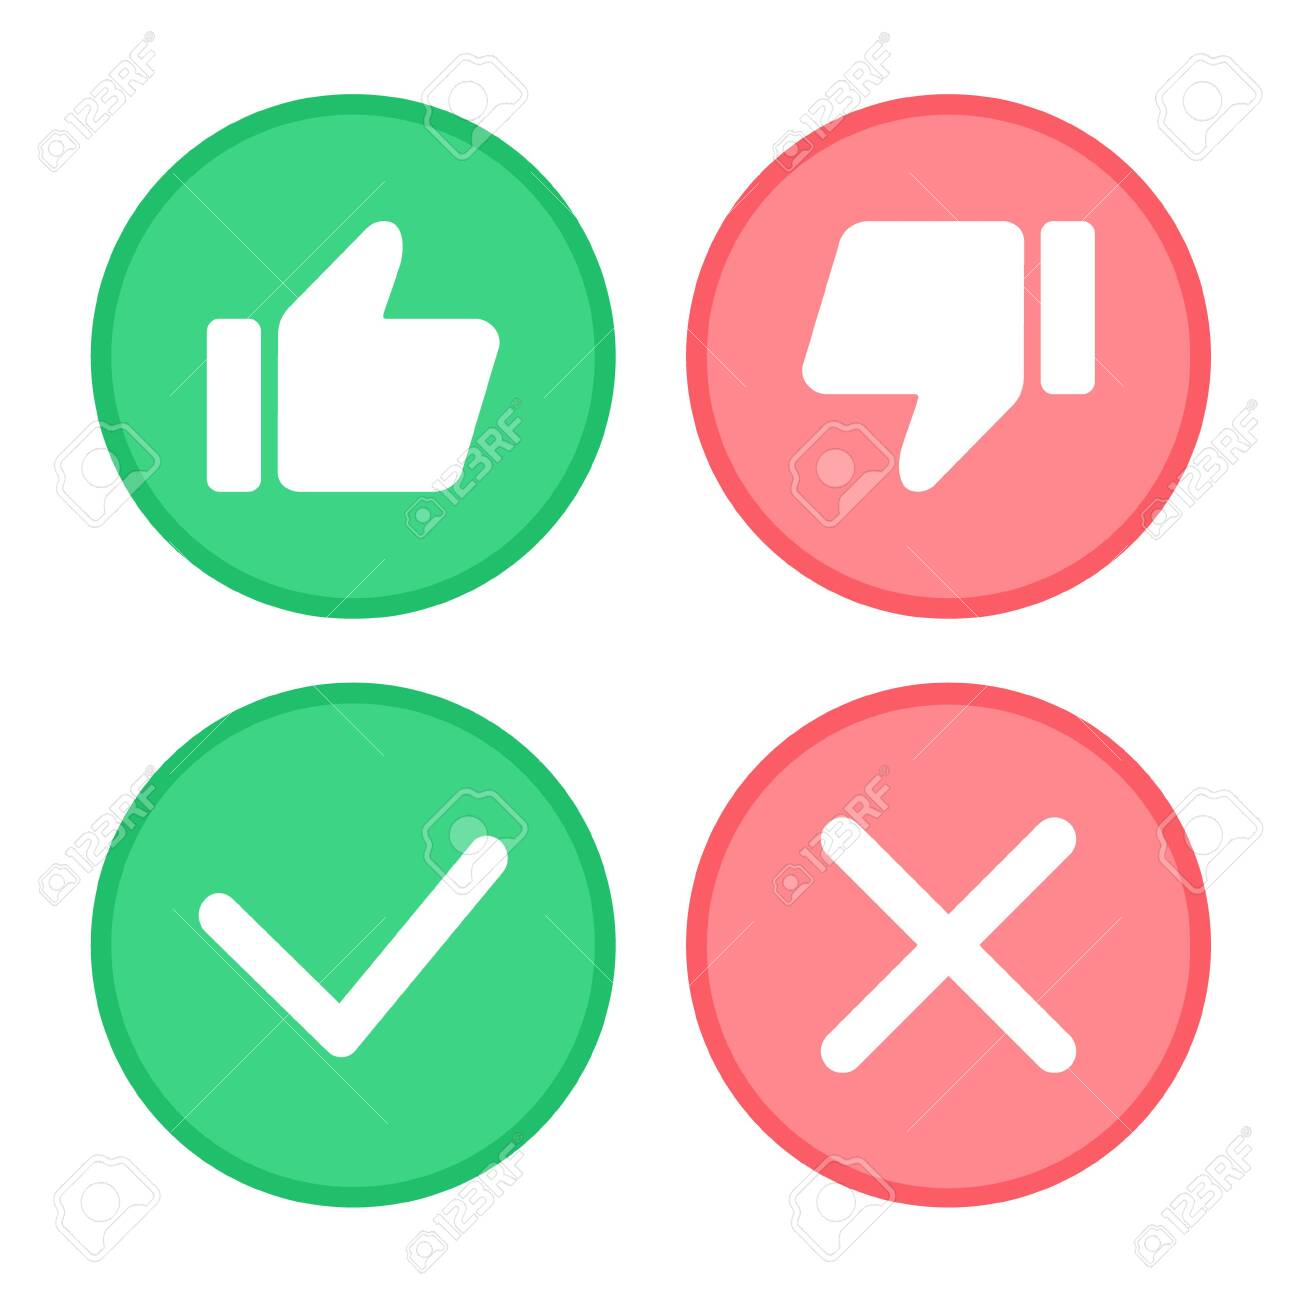 Thumb up and thumb down, Green tick and red cross. - 134269029